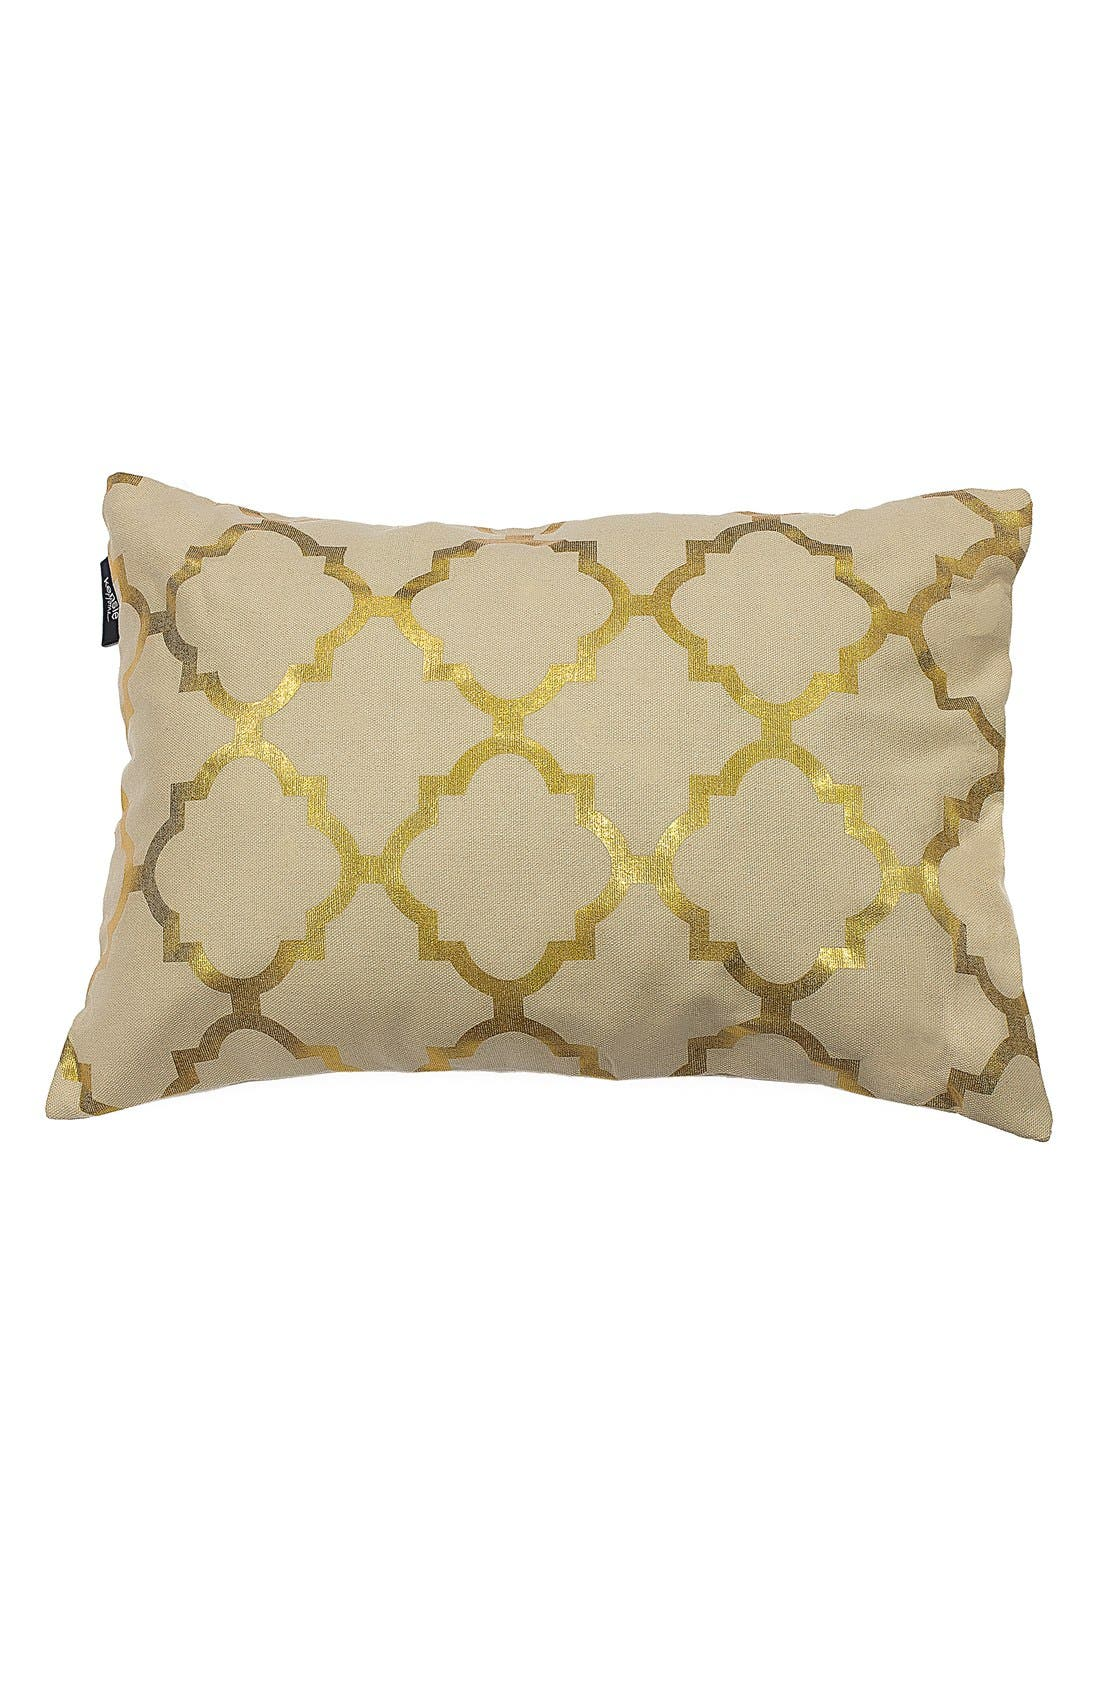 'Holly' Metallic Lattice Pillow,                             Main thumbnail 1, color,                             710